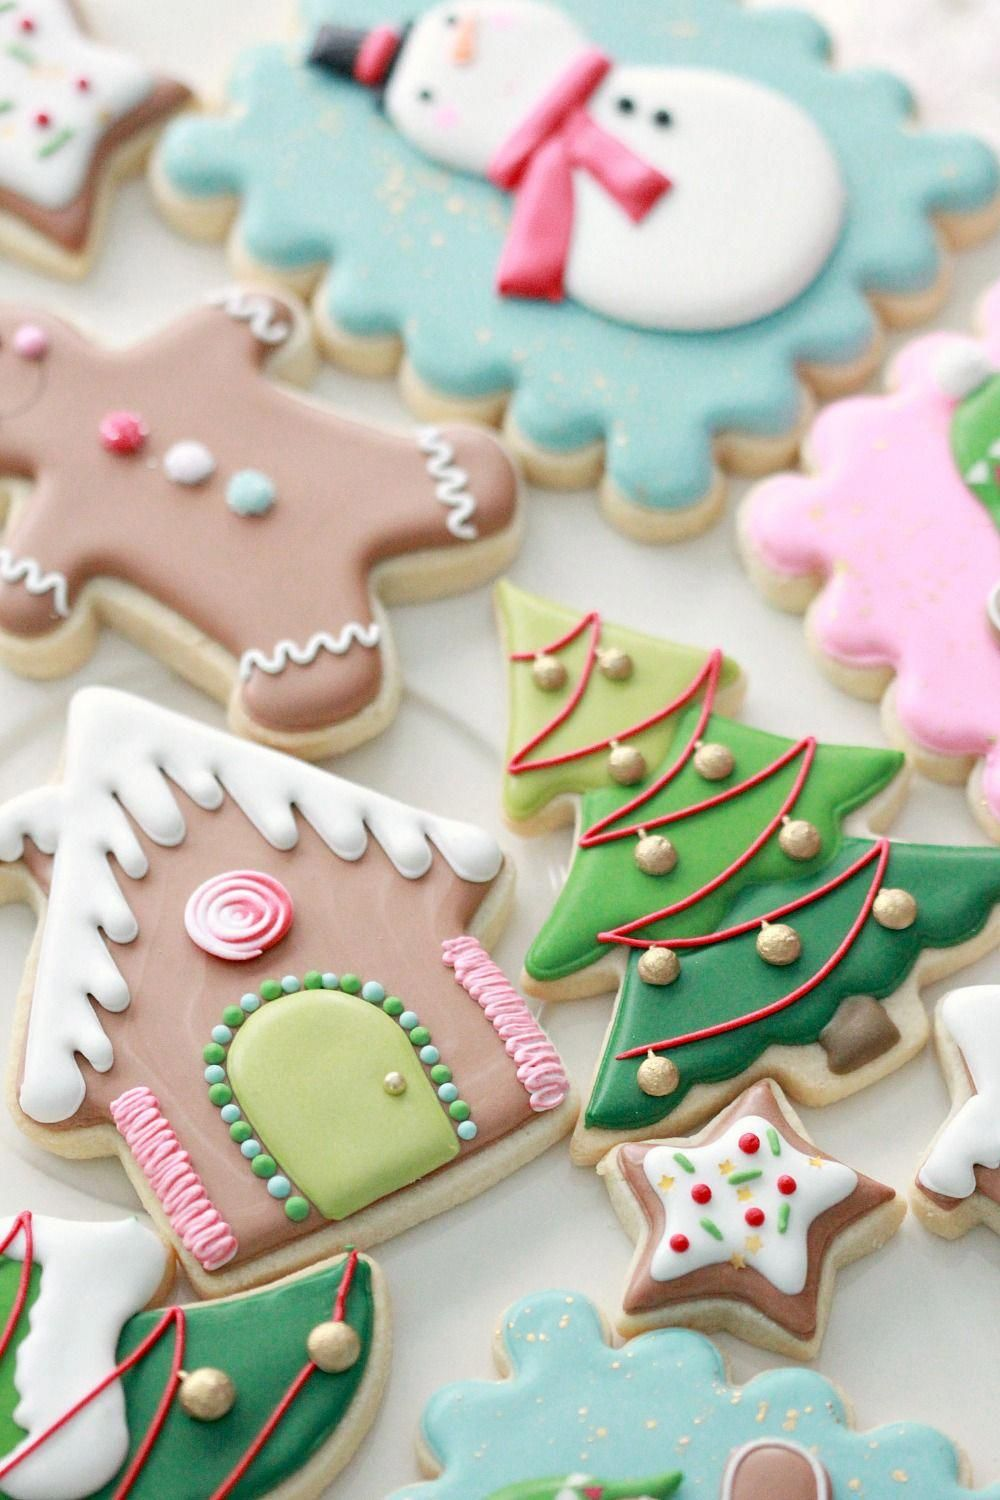 Royal Icing Cookie Decorating Tips #sugarcookies